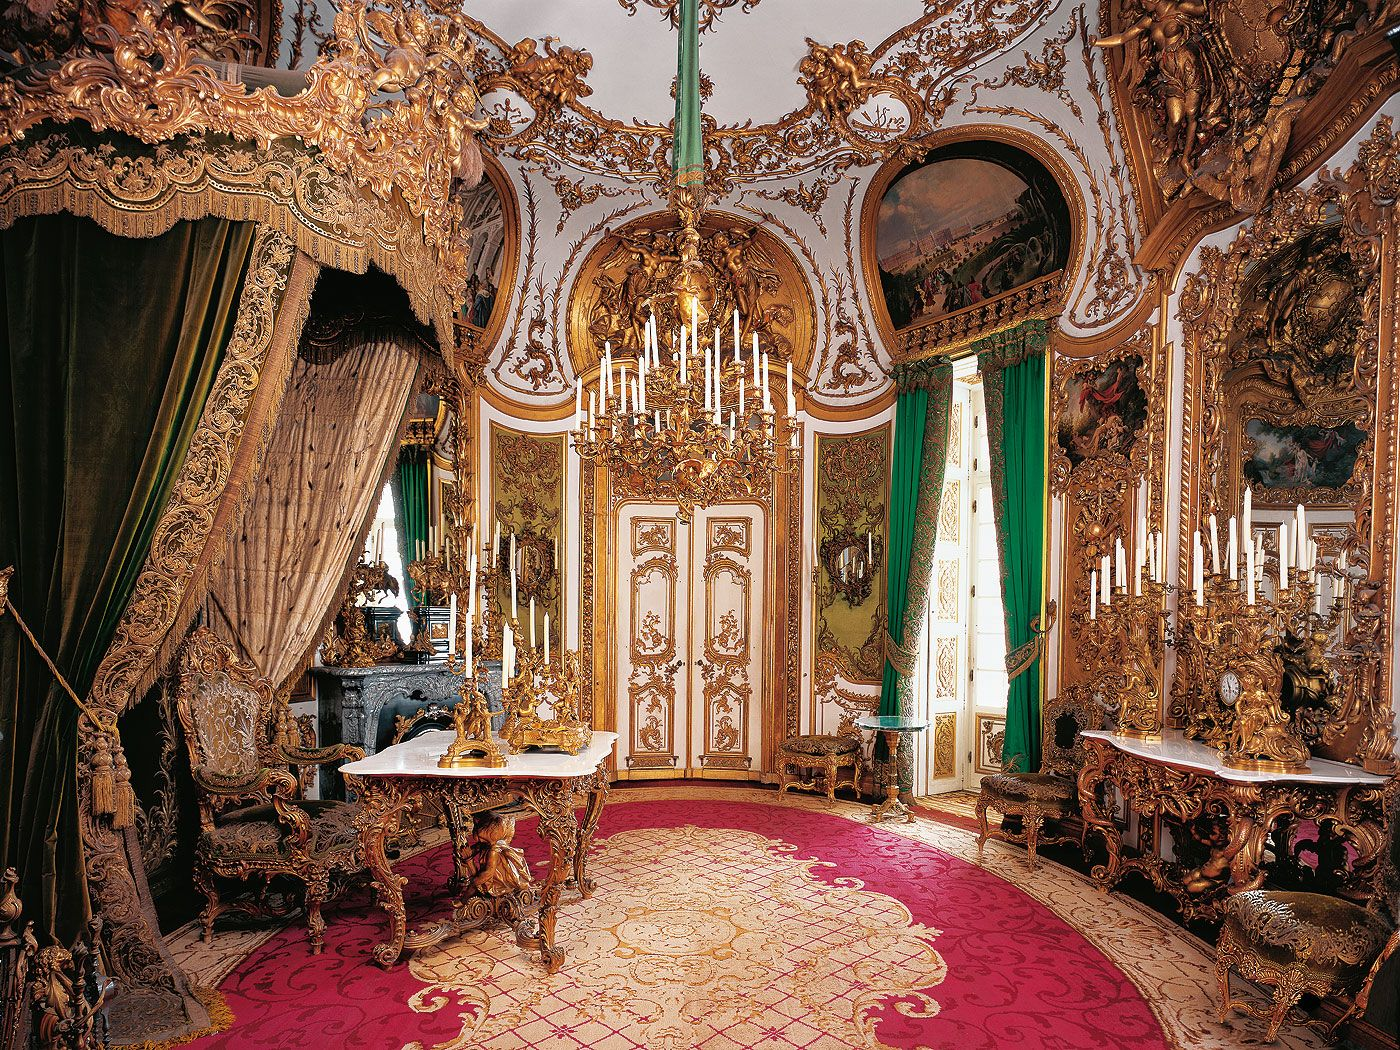 linderhof palace interior - google search | castles and palaces